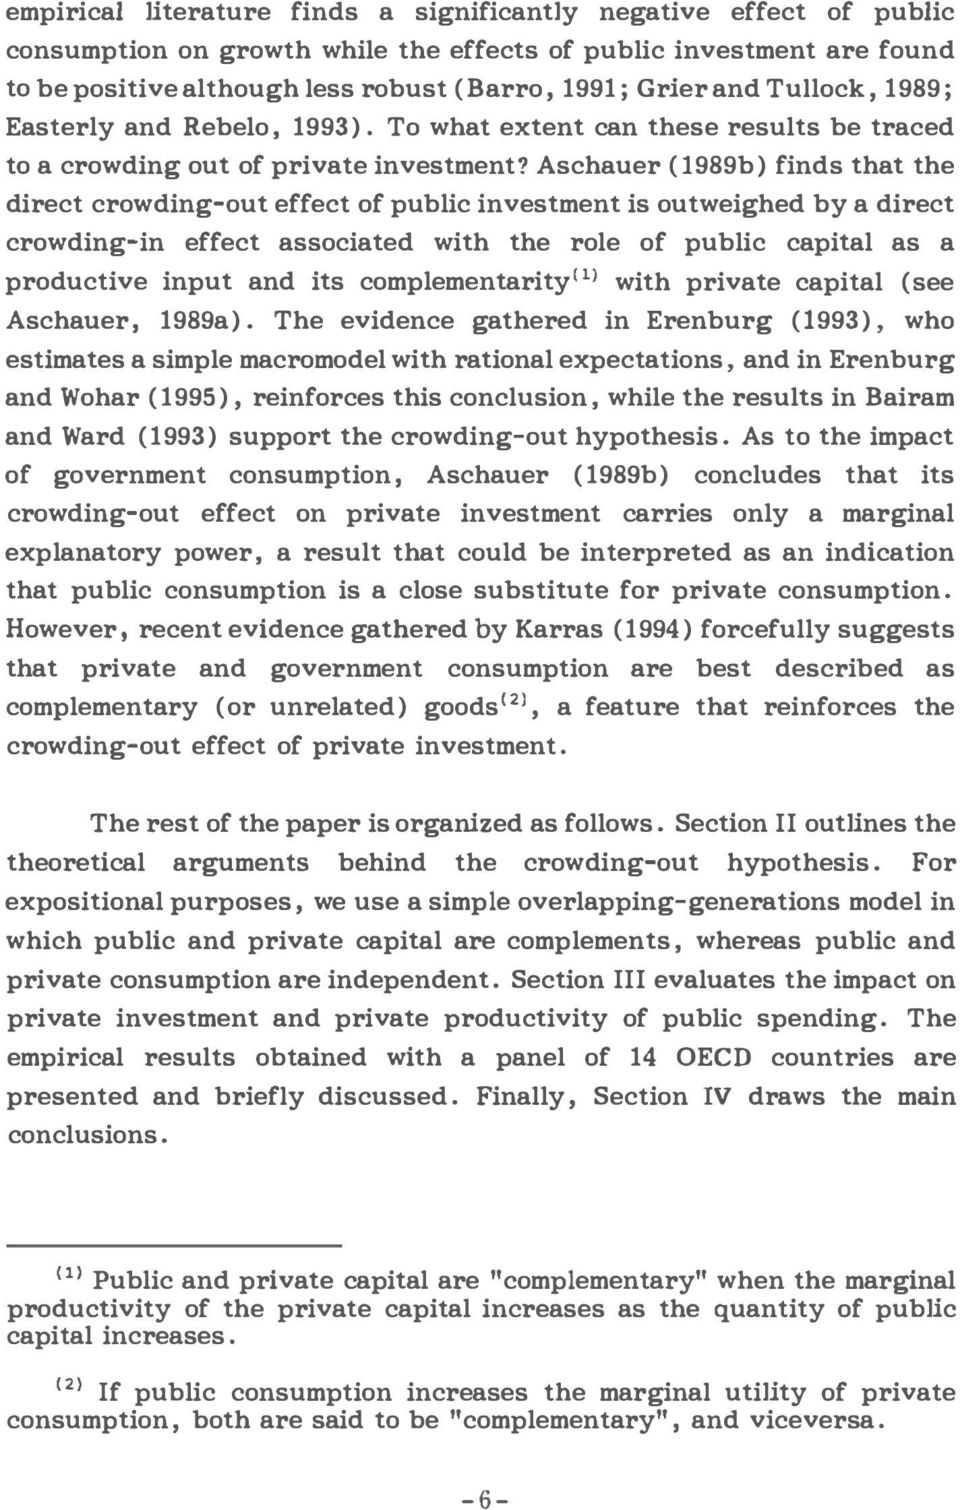 Aschauer (l989b) finds that the direct crowding-out effect of public investment is outweighed by a direct crowding-in effect associated with the role of public capital as a productive input and its